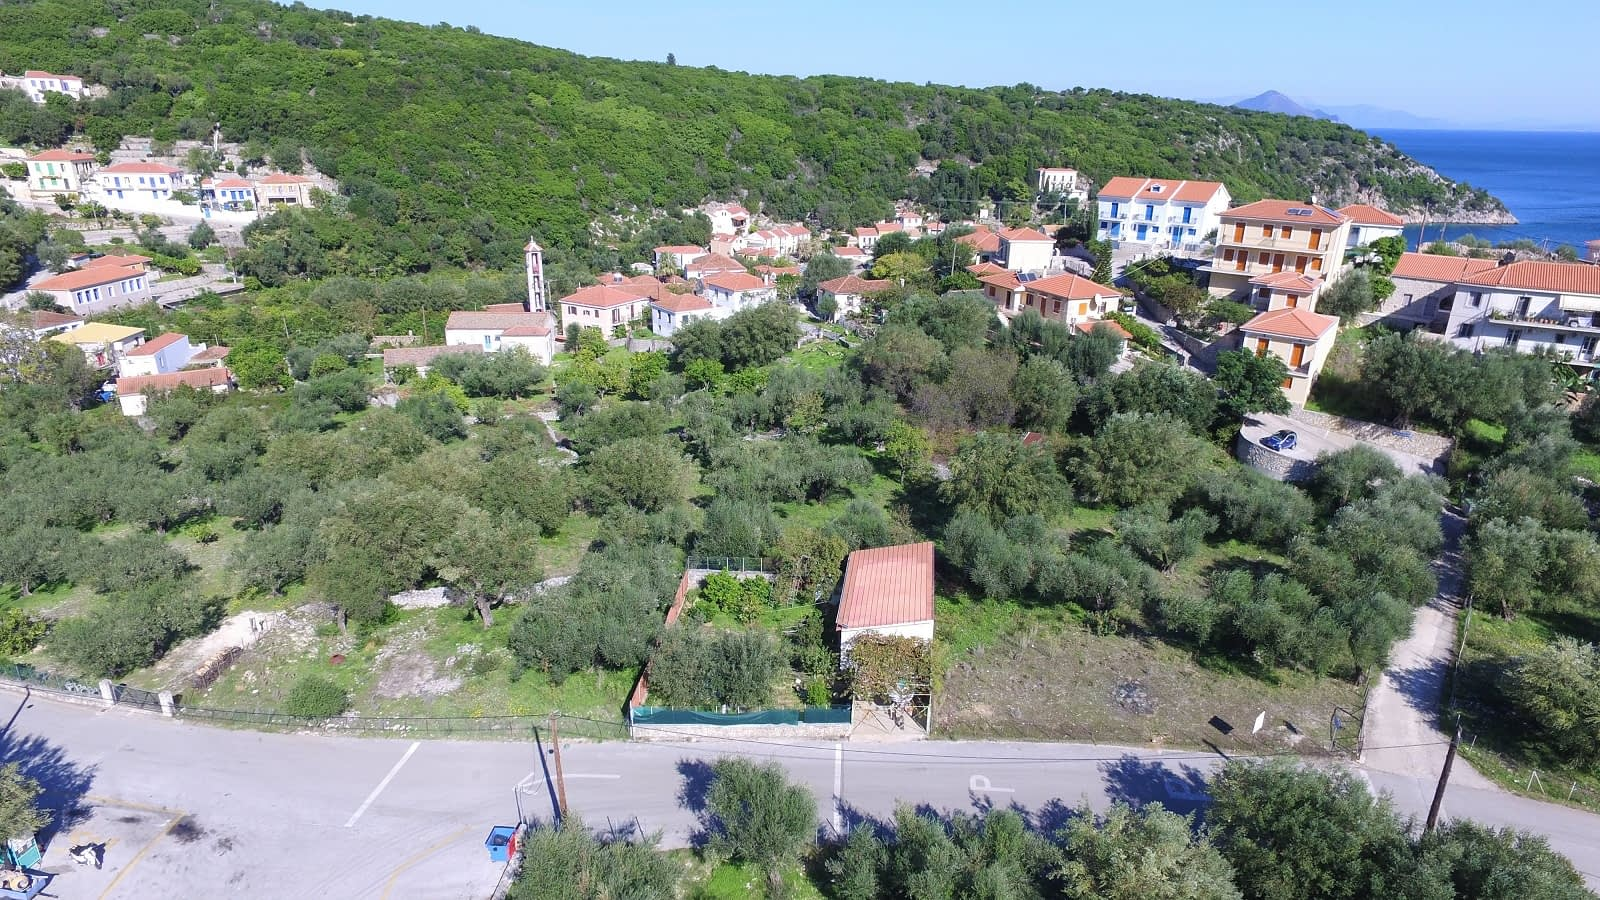 Aerial view of land for sale Ithaca Greece Kioni